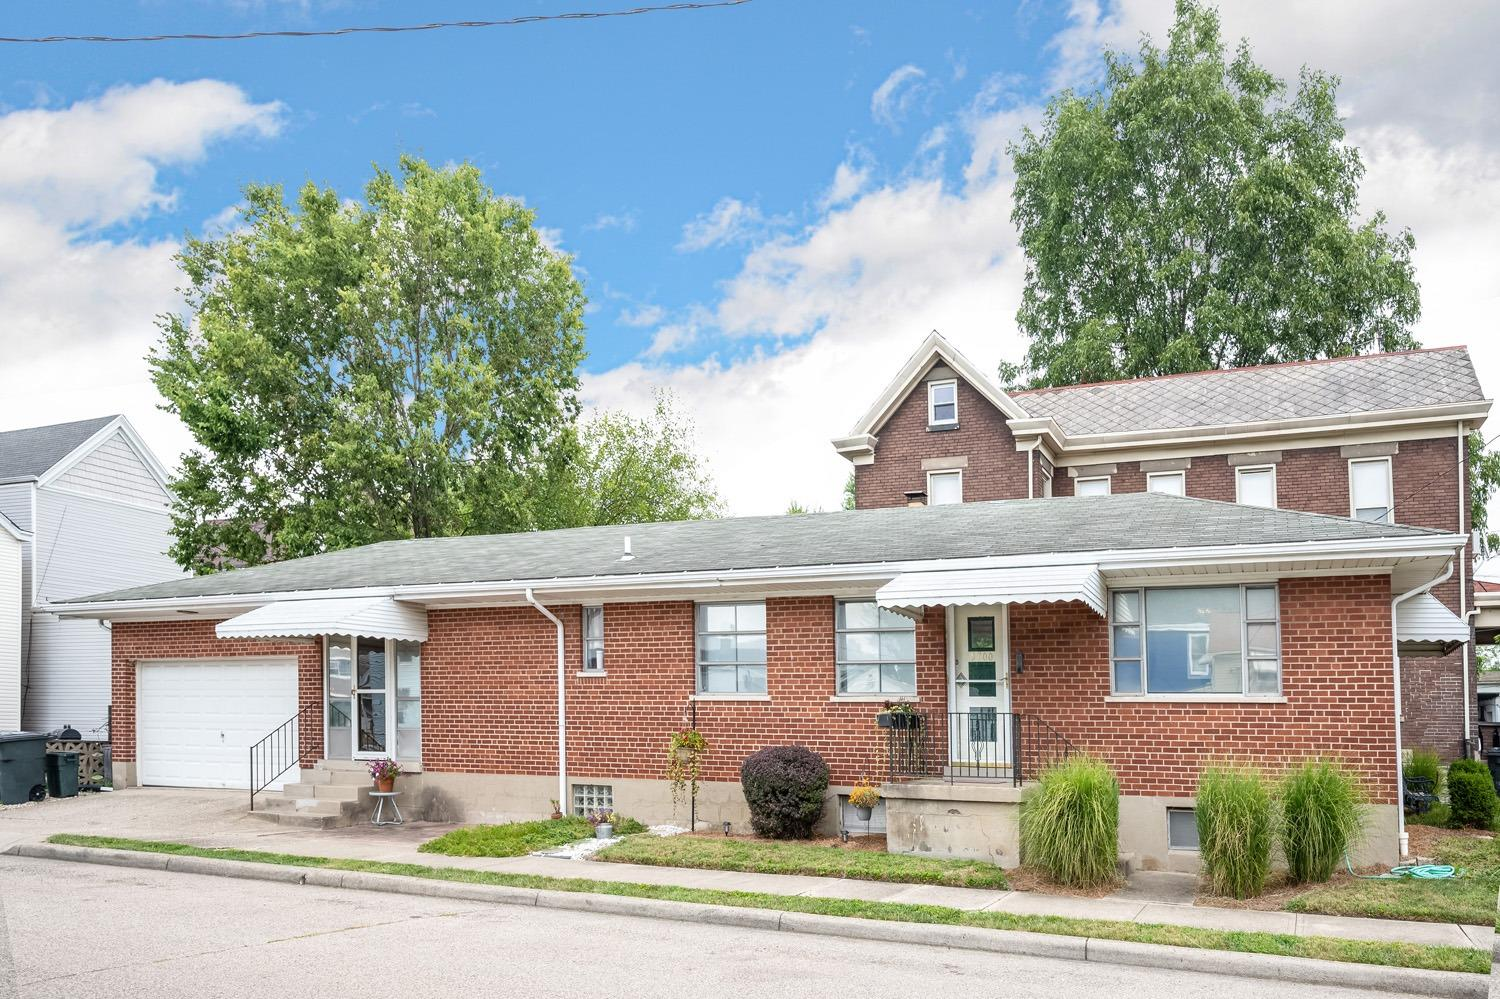 5700 Sycamore St Elmwood Place, OH